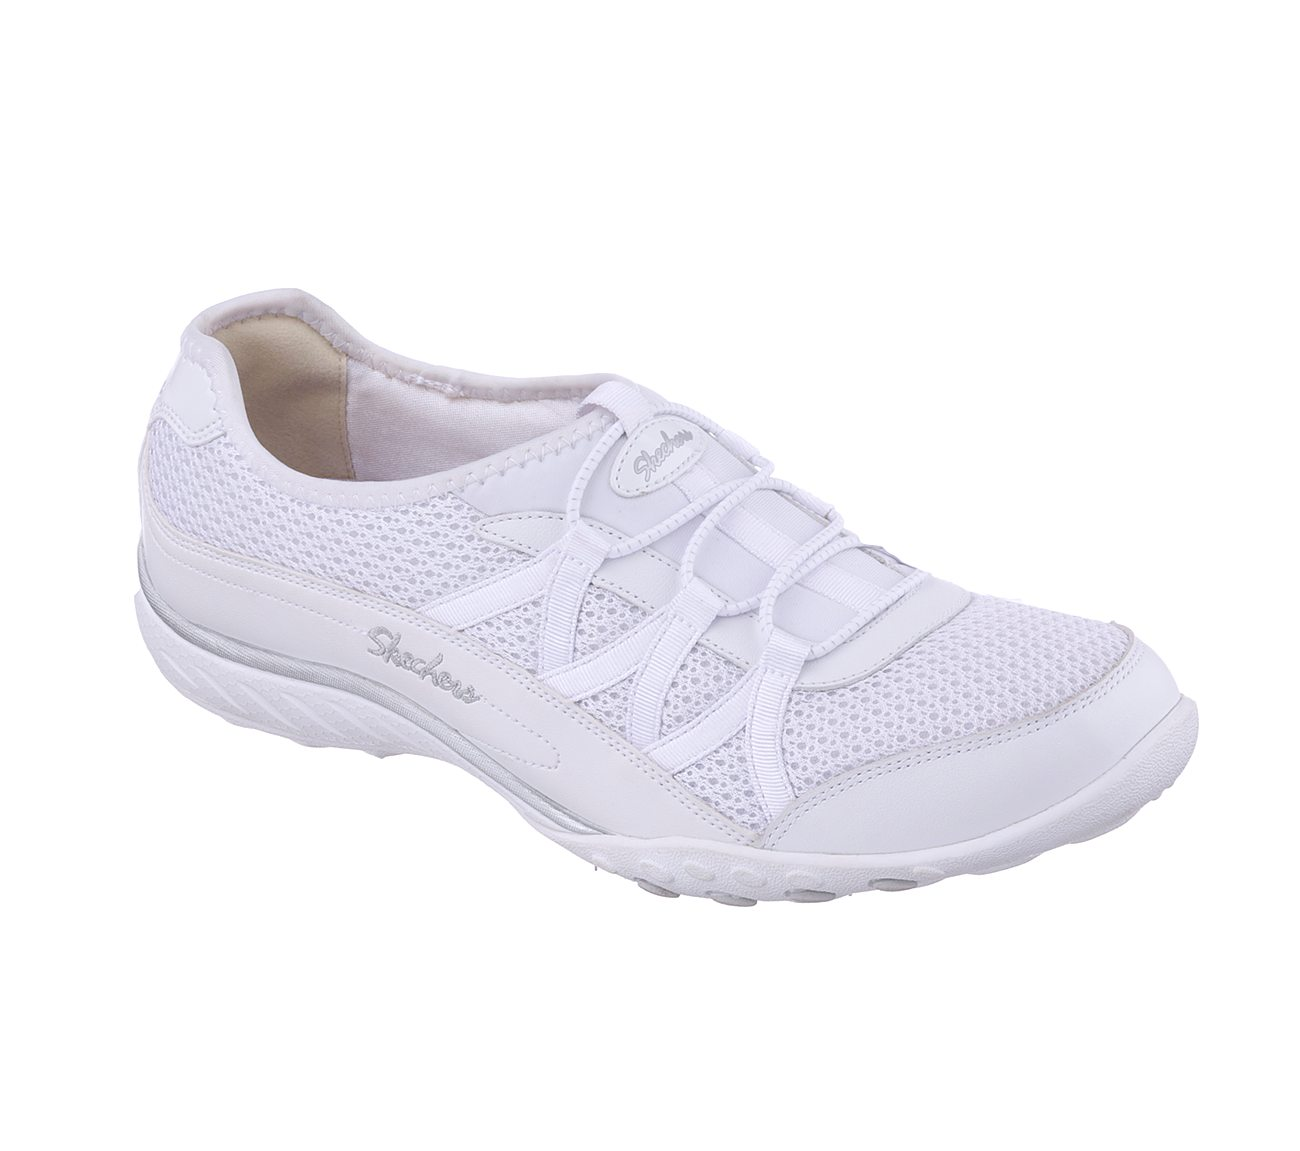 buy skechers relaxed fit breathe easy relaxation active